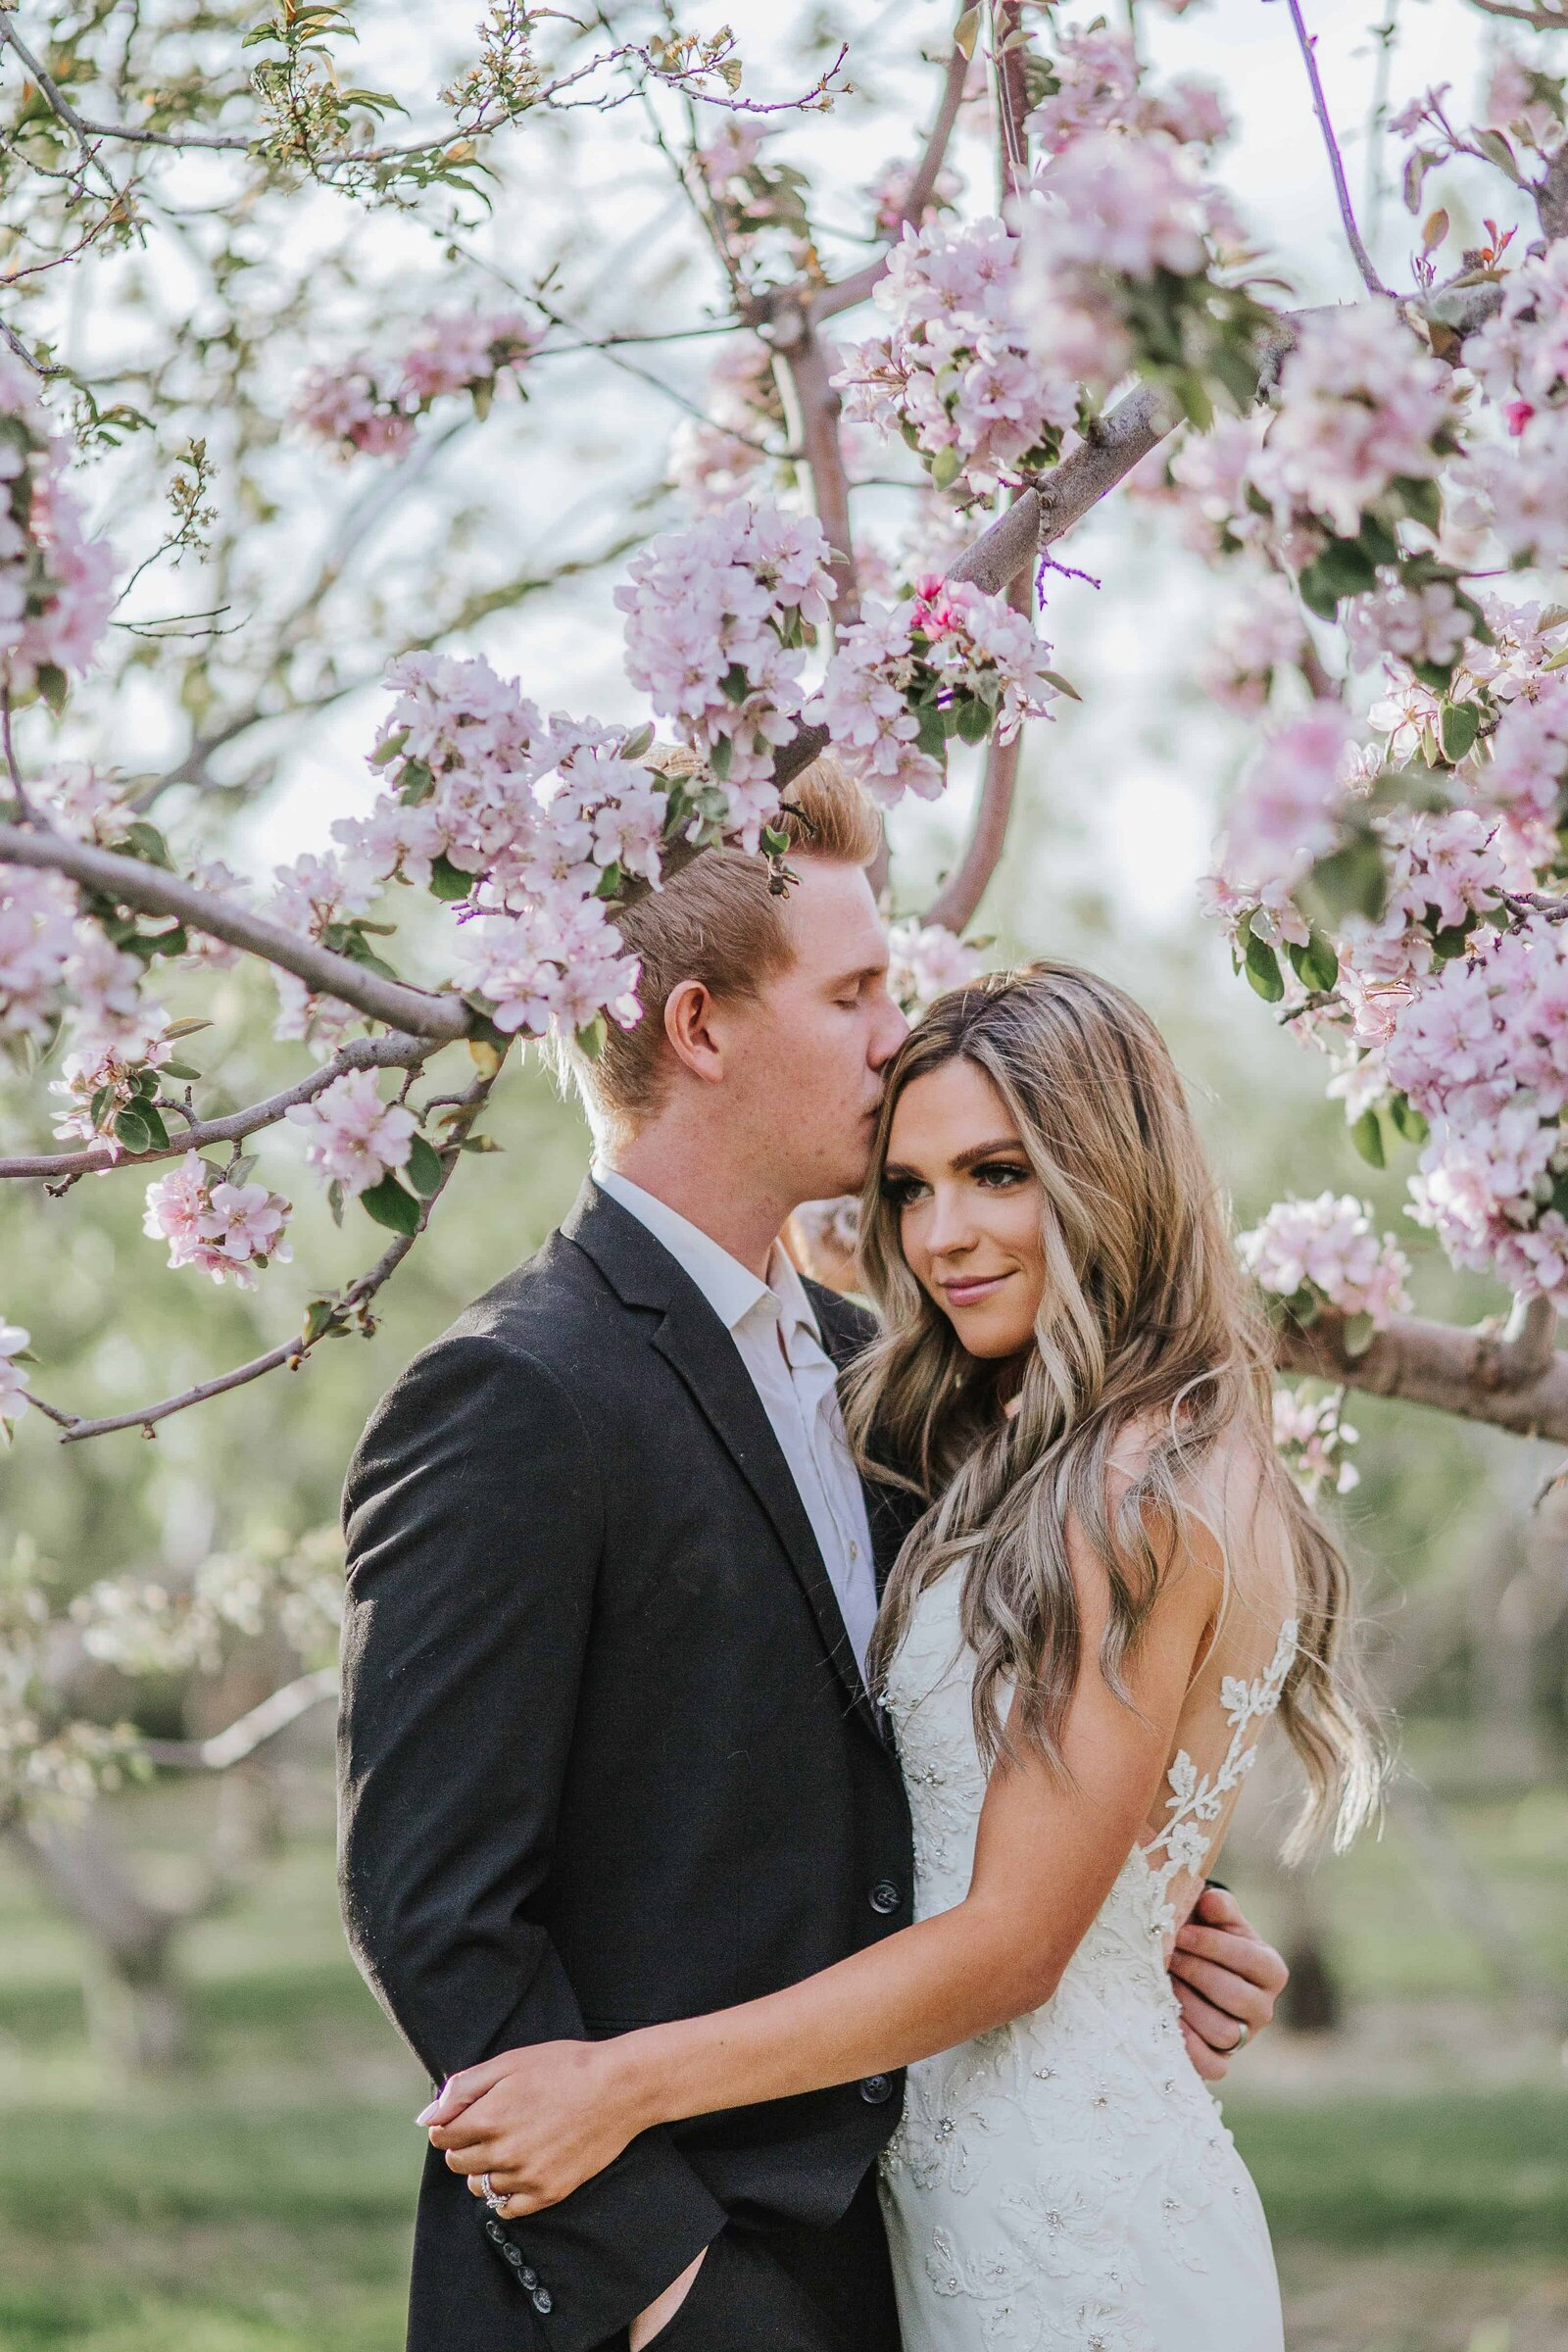 groom kissing brides forhead by tree with pink flowers in Chattanooga Tennessee